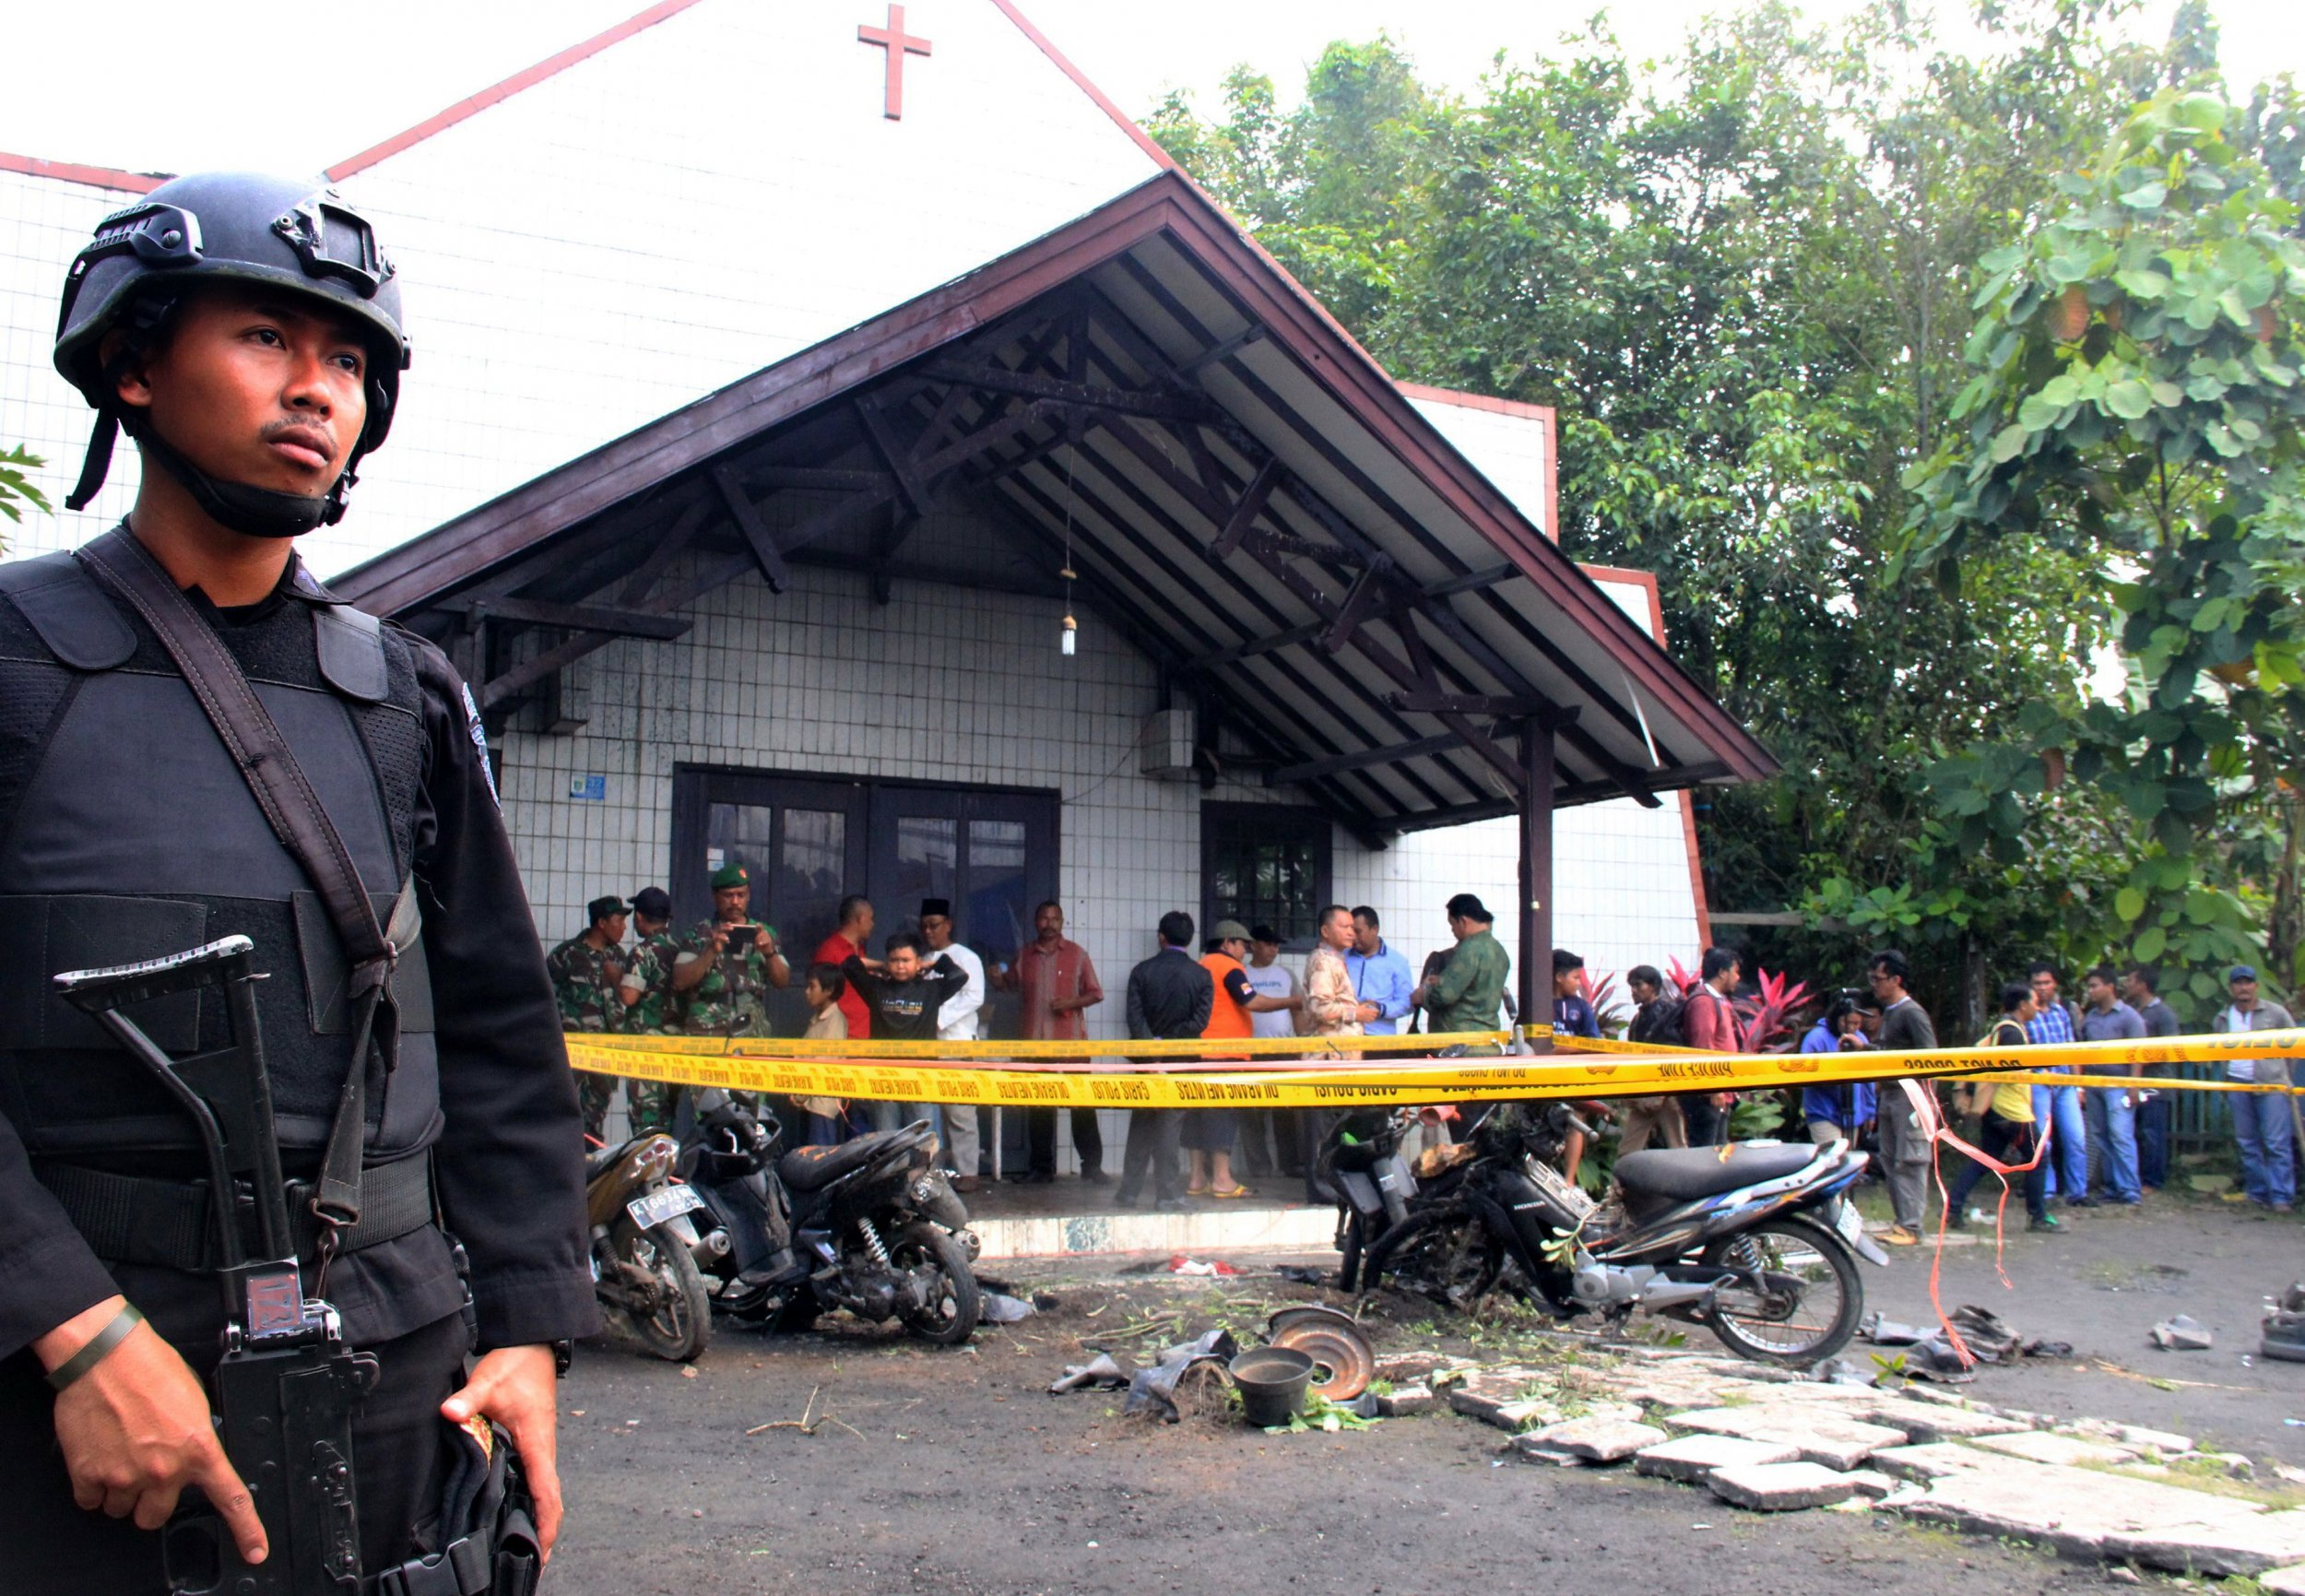 Indonesia attack inspired by ISIS